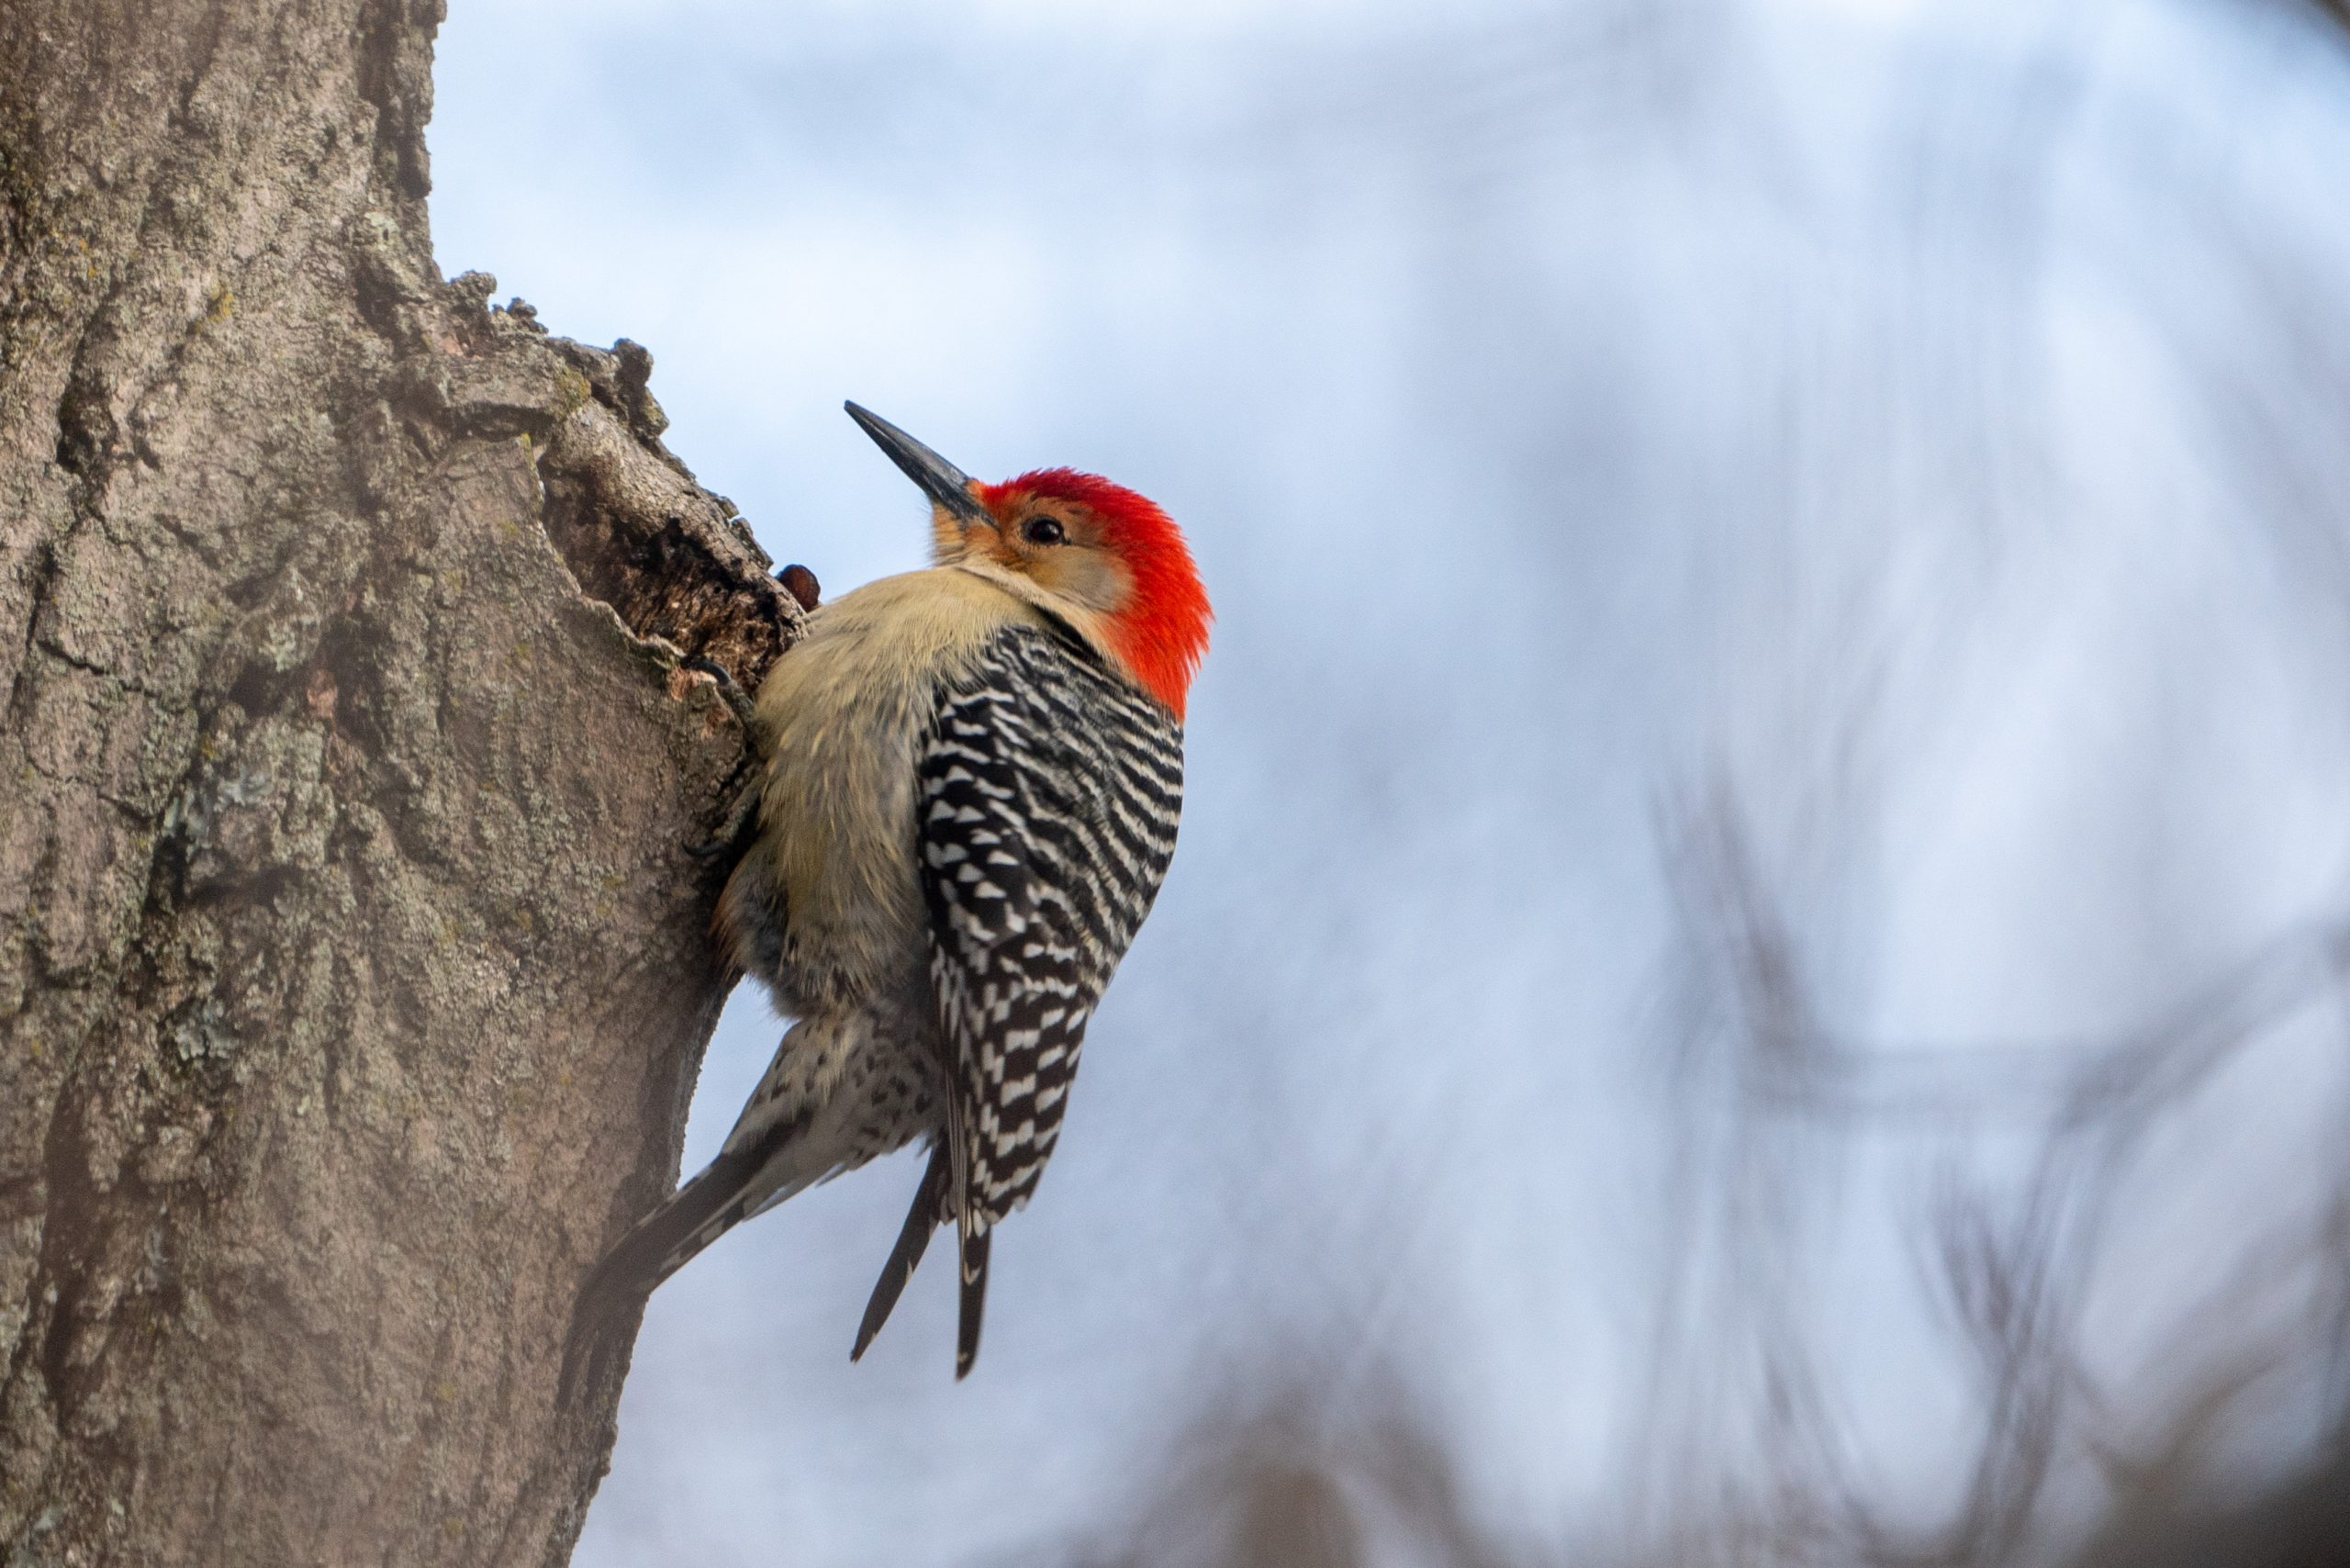 A red-bellied woodpecker sit on a tree, pecking around for potential food.